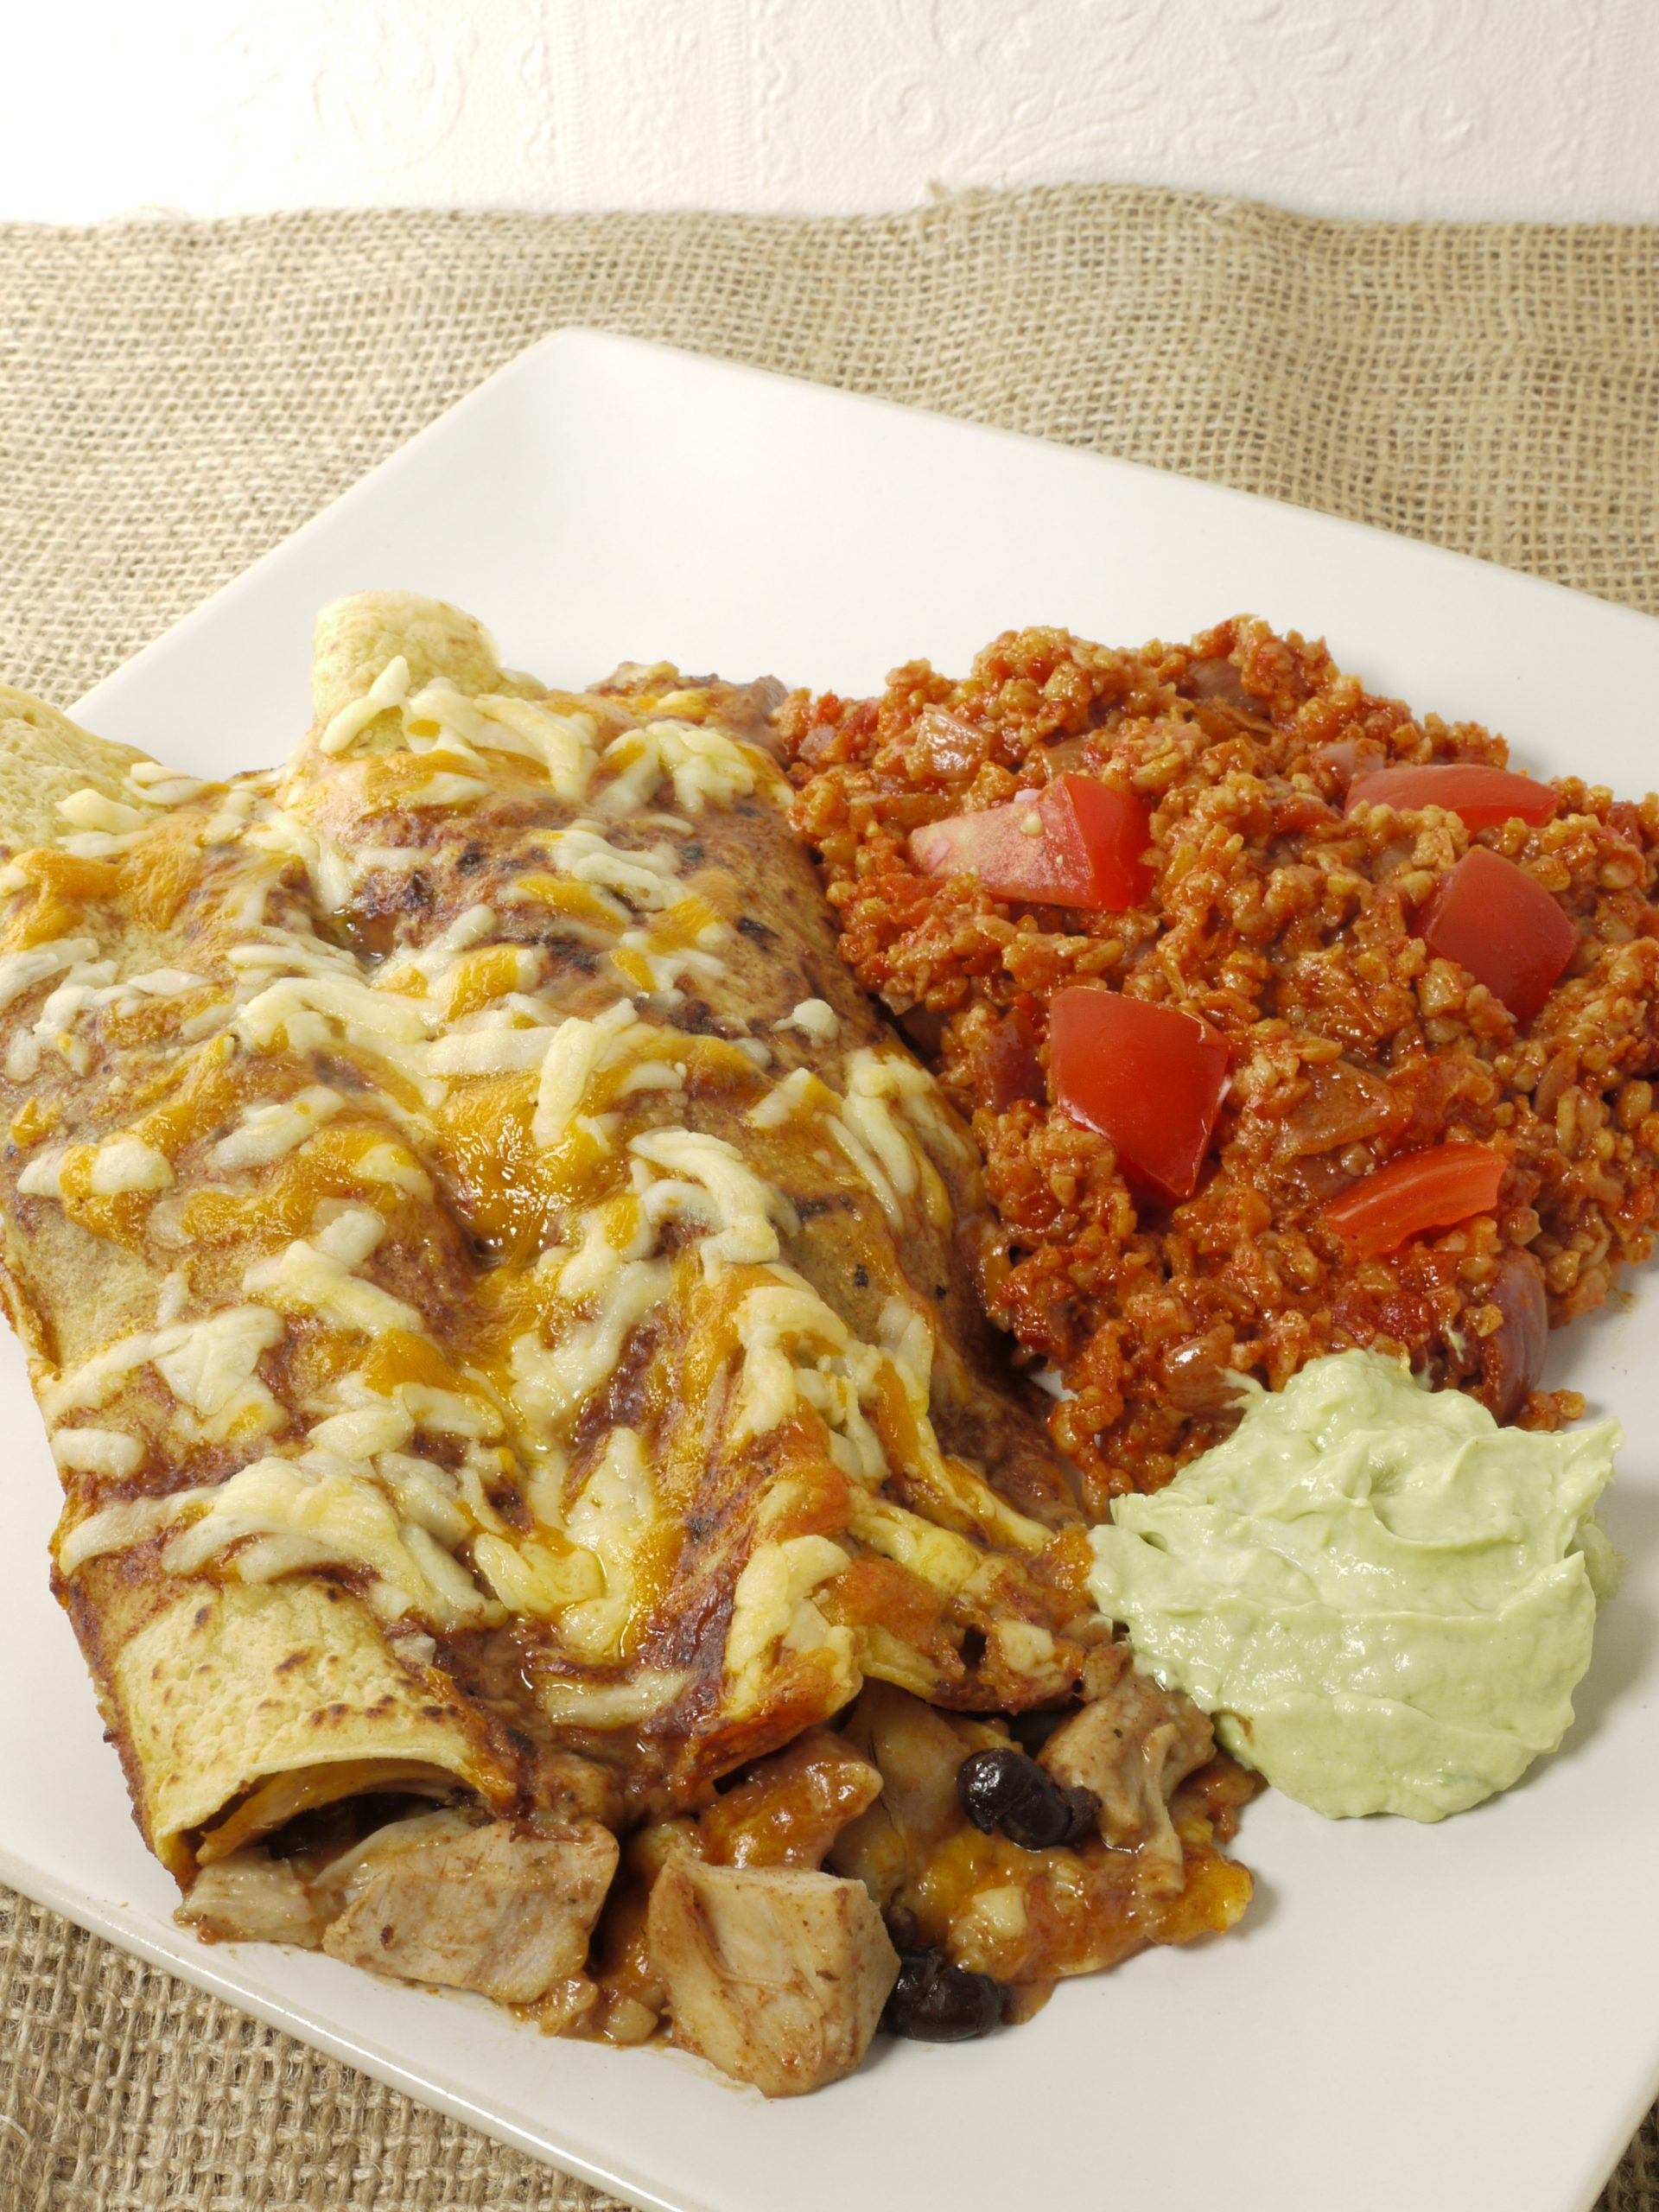 What to do with leftover cooked chicken make Chicken Enchiladas from Leftovers by Design